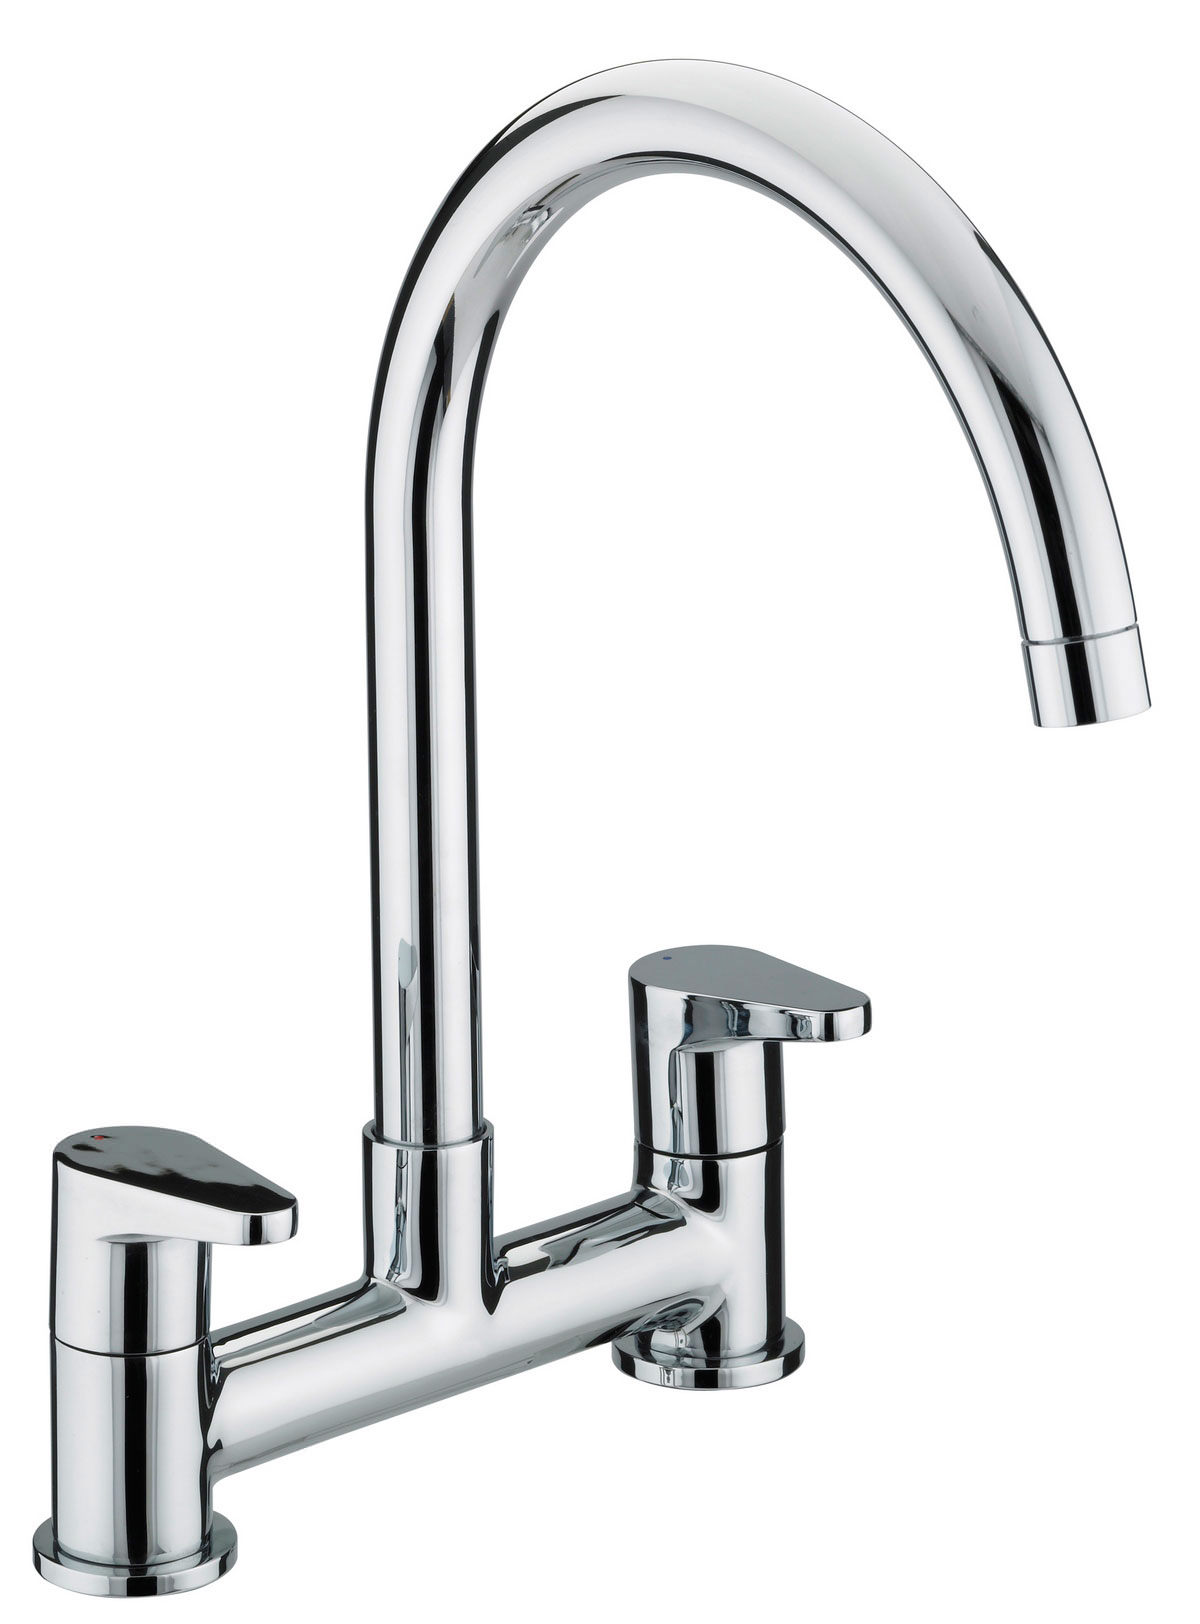 Bristan Quest Deck Kitchen Sink Mixer Tap - QST DSM C